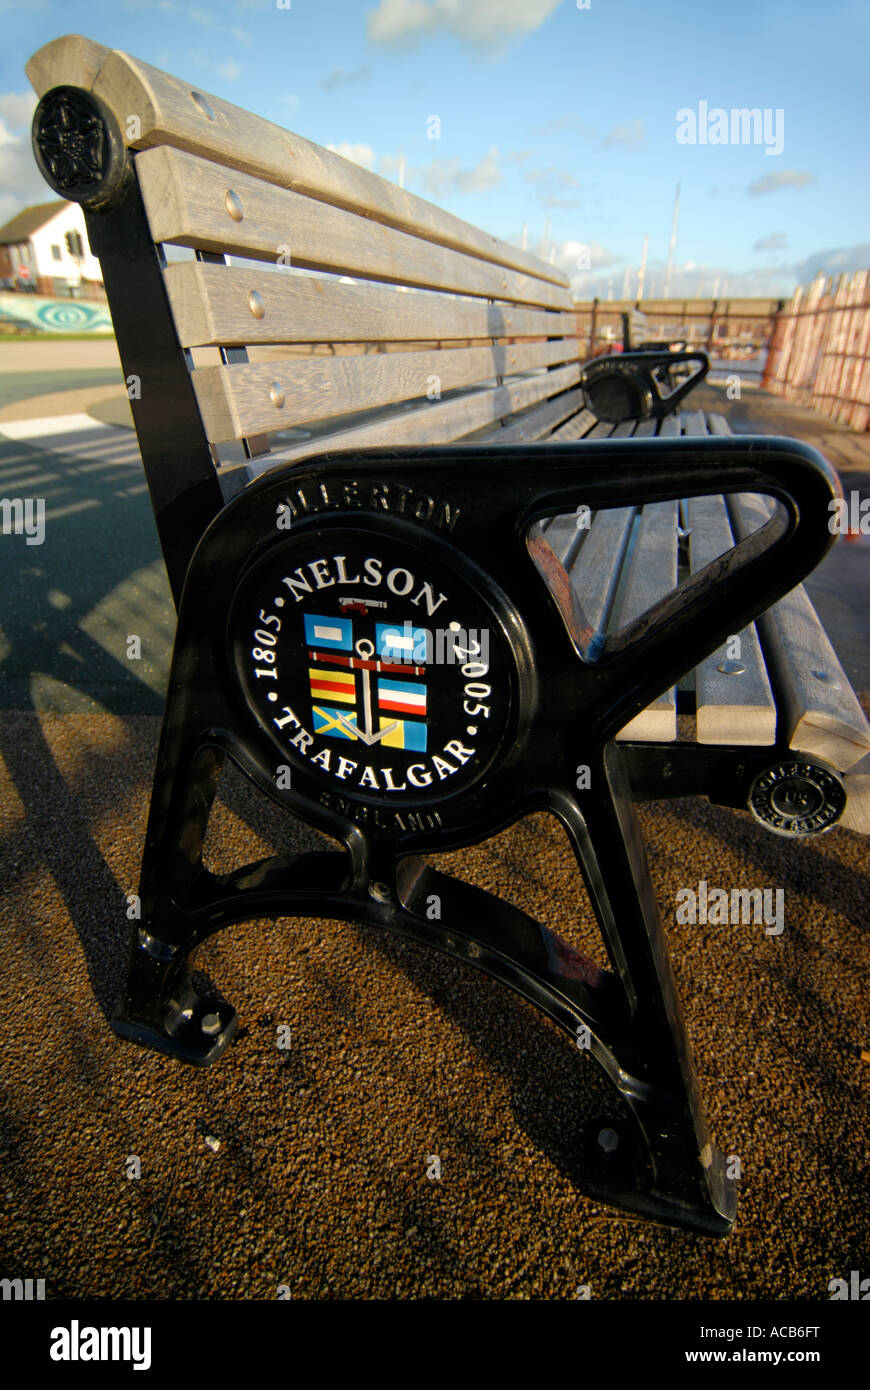 Bench at Shoreham by sea West Sussex with commemorative plaque 200 years since Nelson's victory at Trafalgar - Stock Image